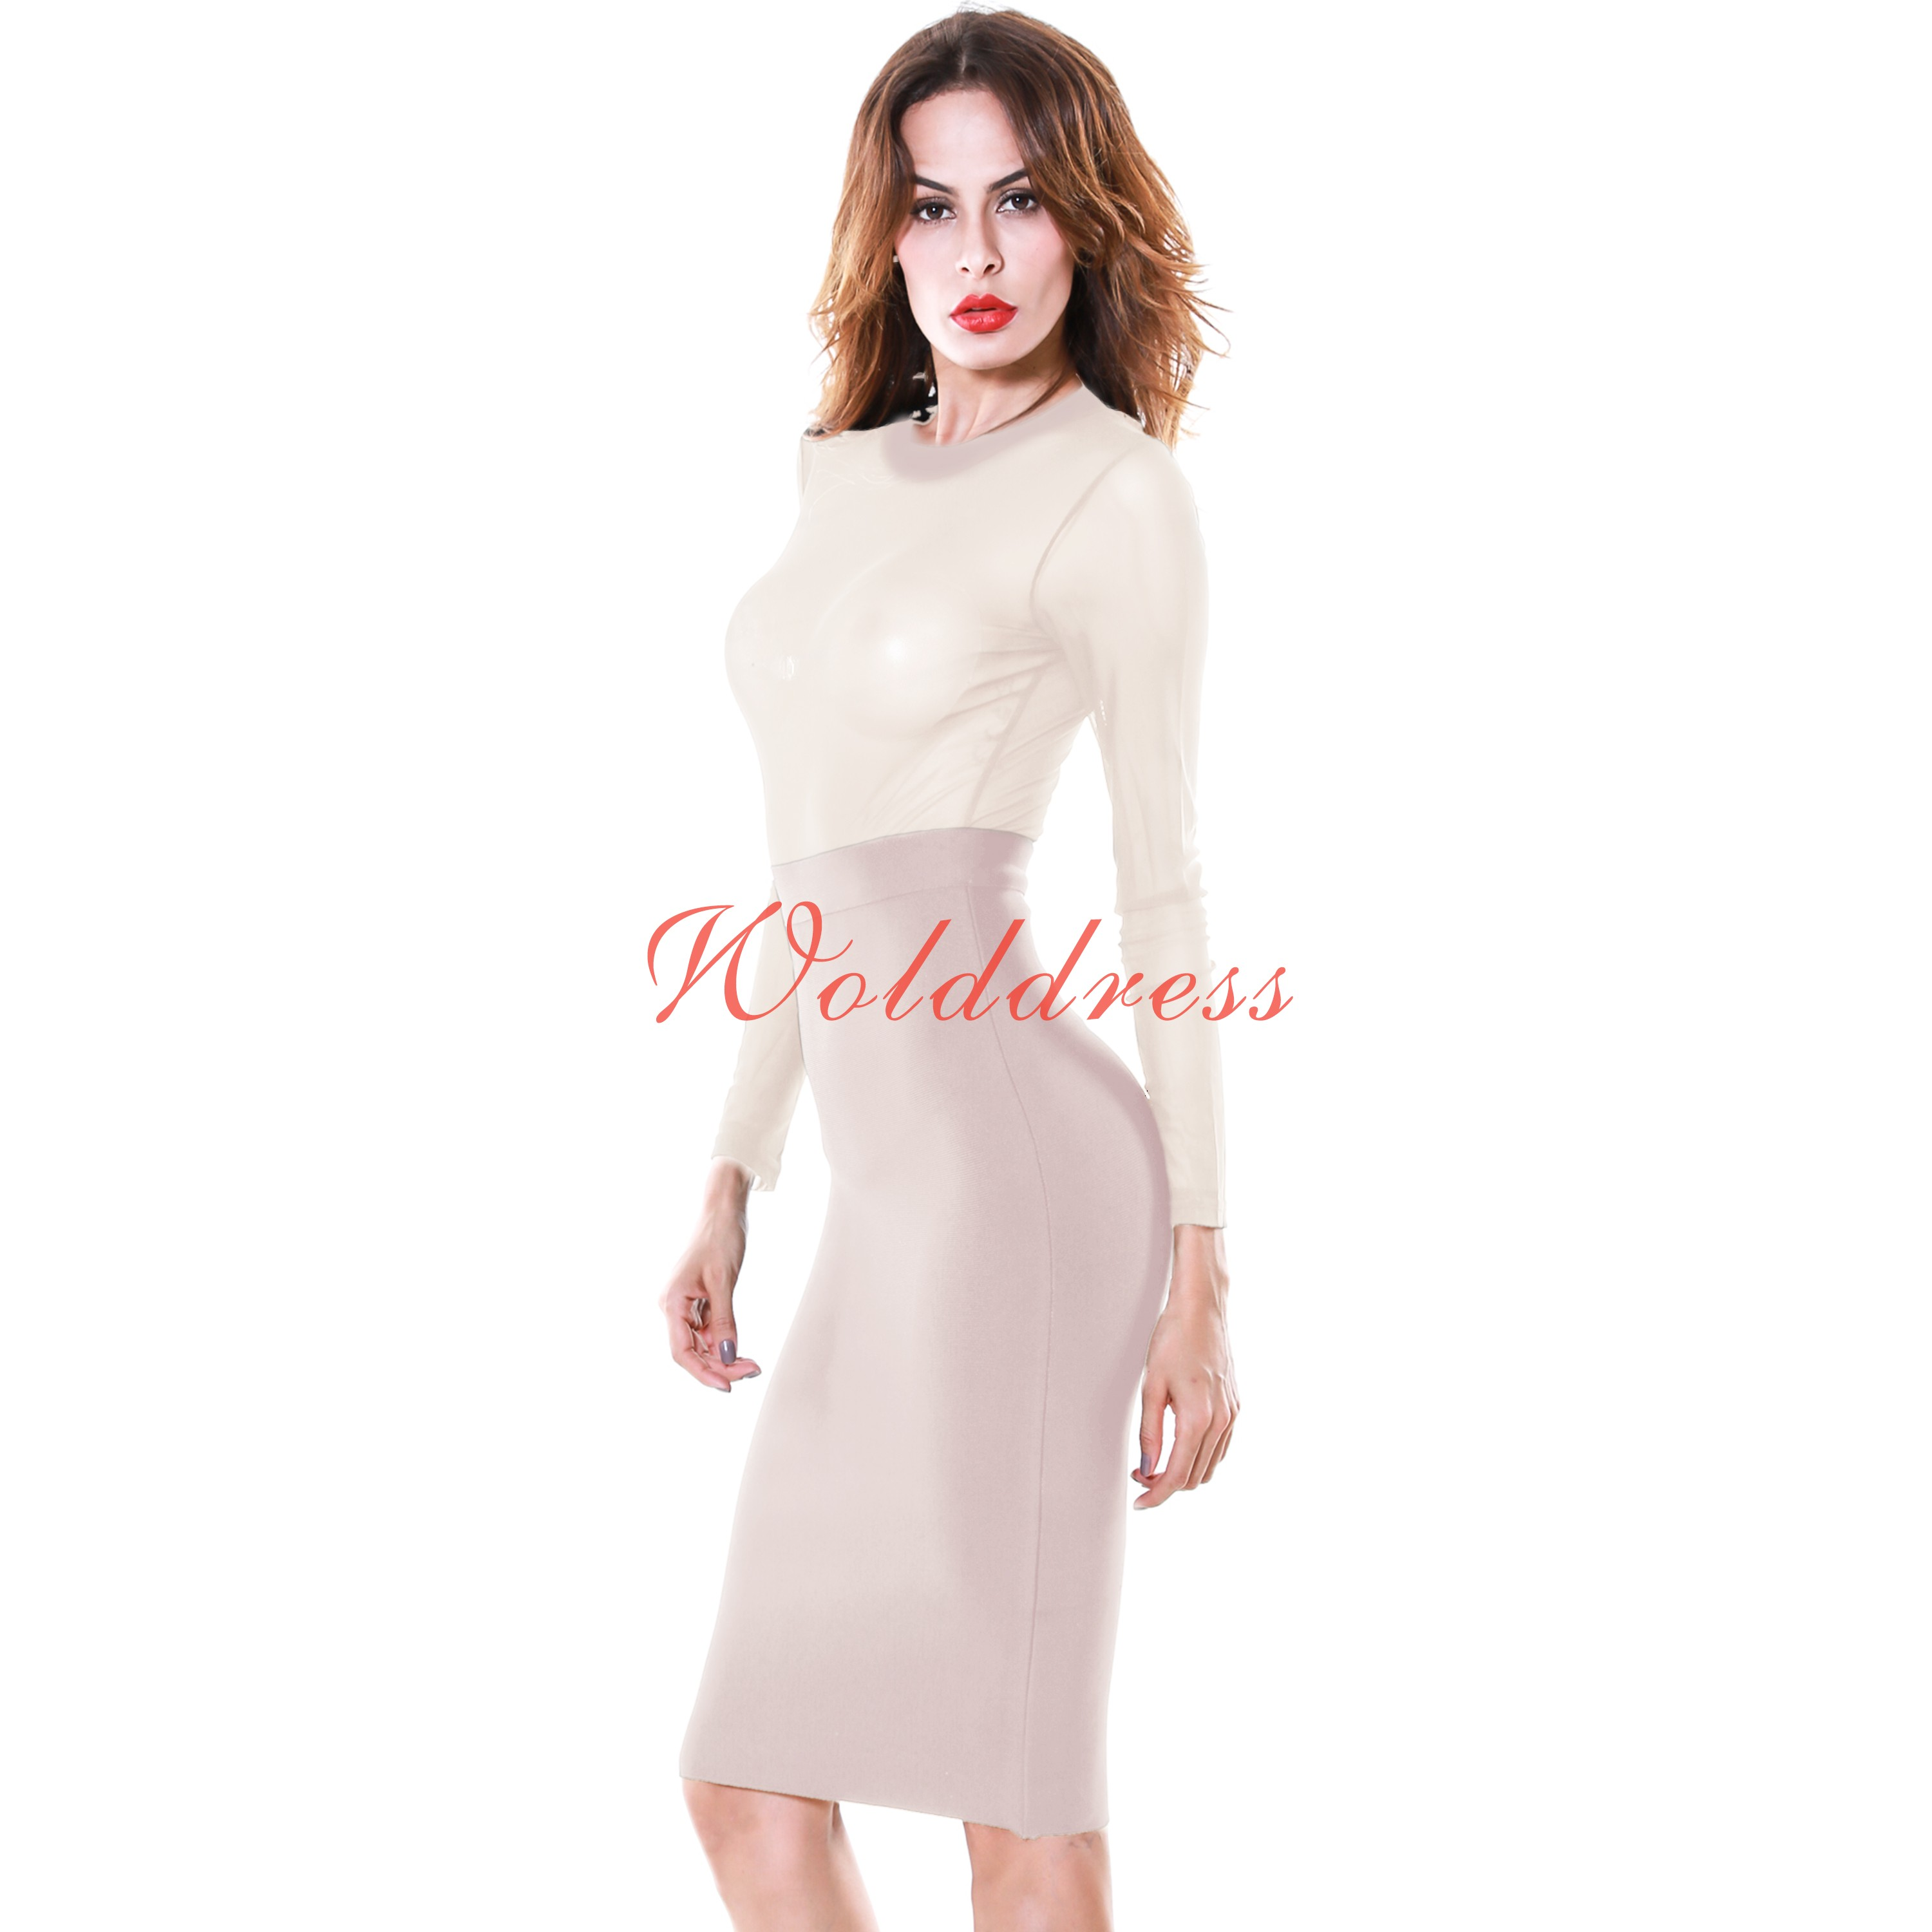 Rayon - Round Neck Top Sheer Mesh Long Sleeves Cocktail Evening Party Bandage Dress HJ318-Nude